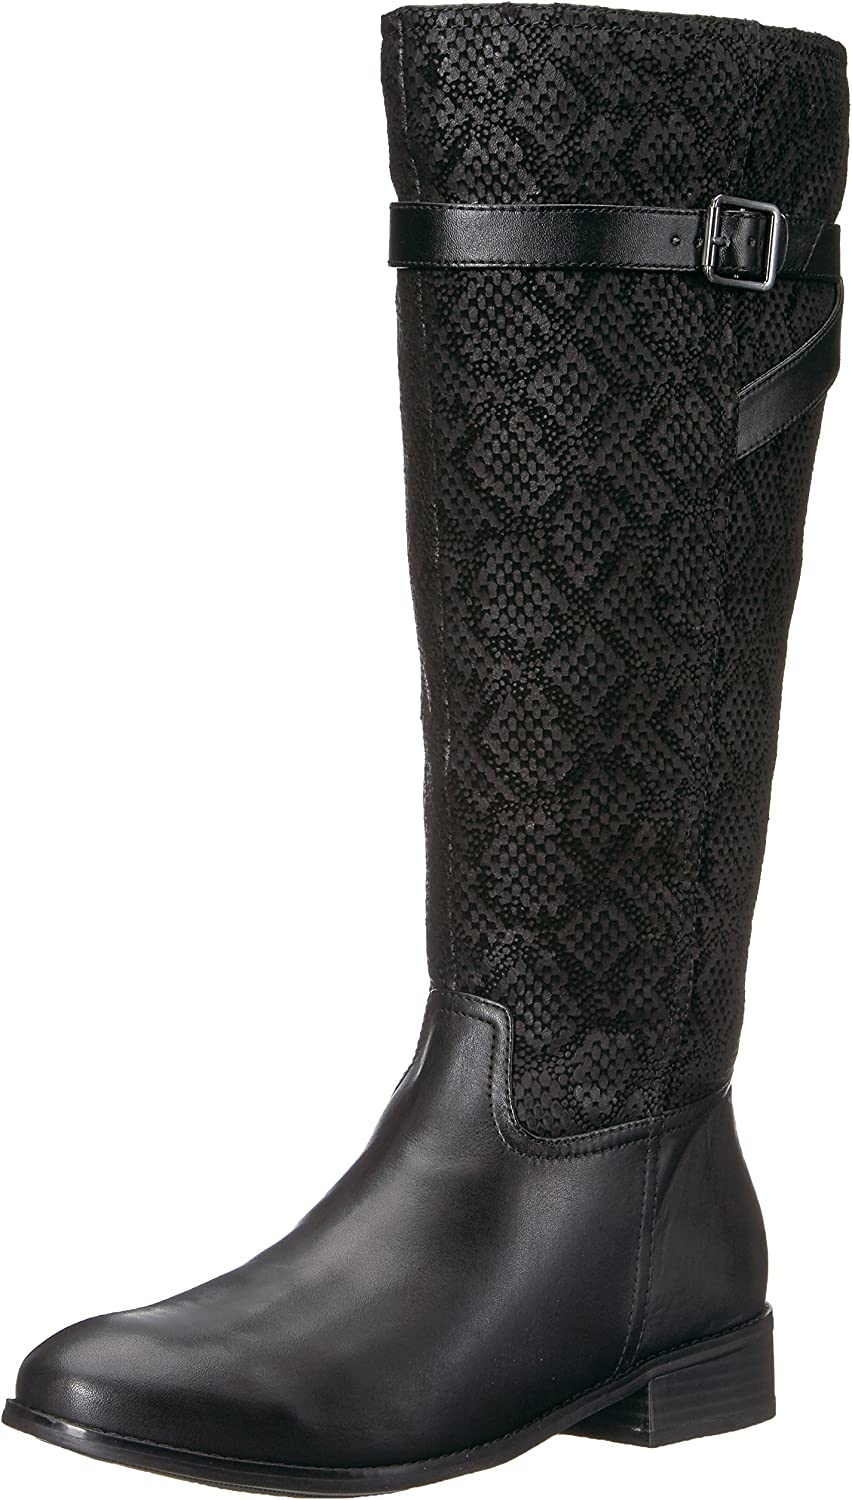 Tredters Womens Lyra Riding Boot